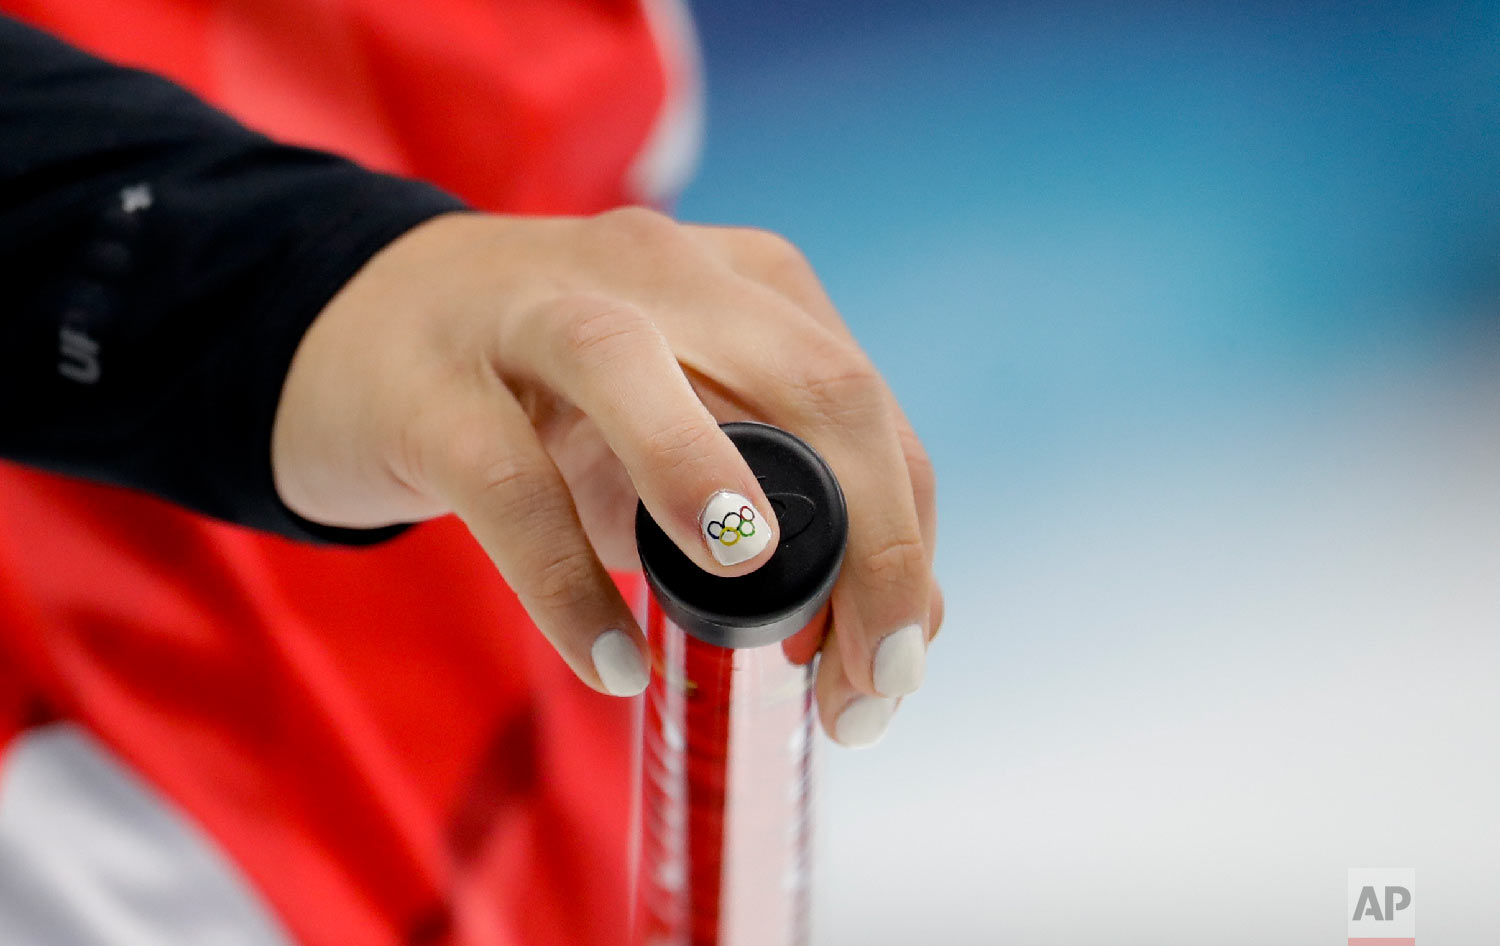 Canada's skip Rachel Homan holds her broom during a women's curling match against Denmark at the 2018 Winter Olympics in Gangneung, South Korea, Friday, Feb. 16, 2018. (AP Photo/Natacha Pisarenko)